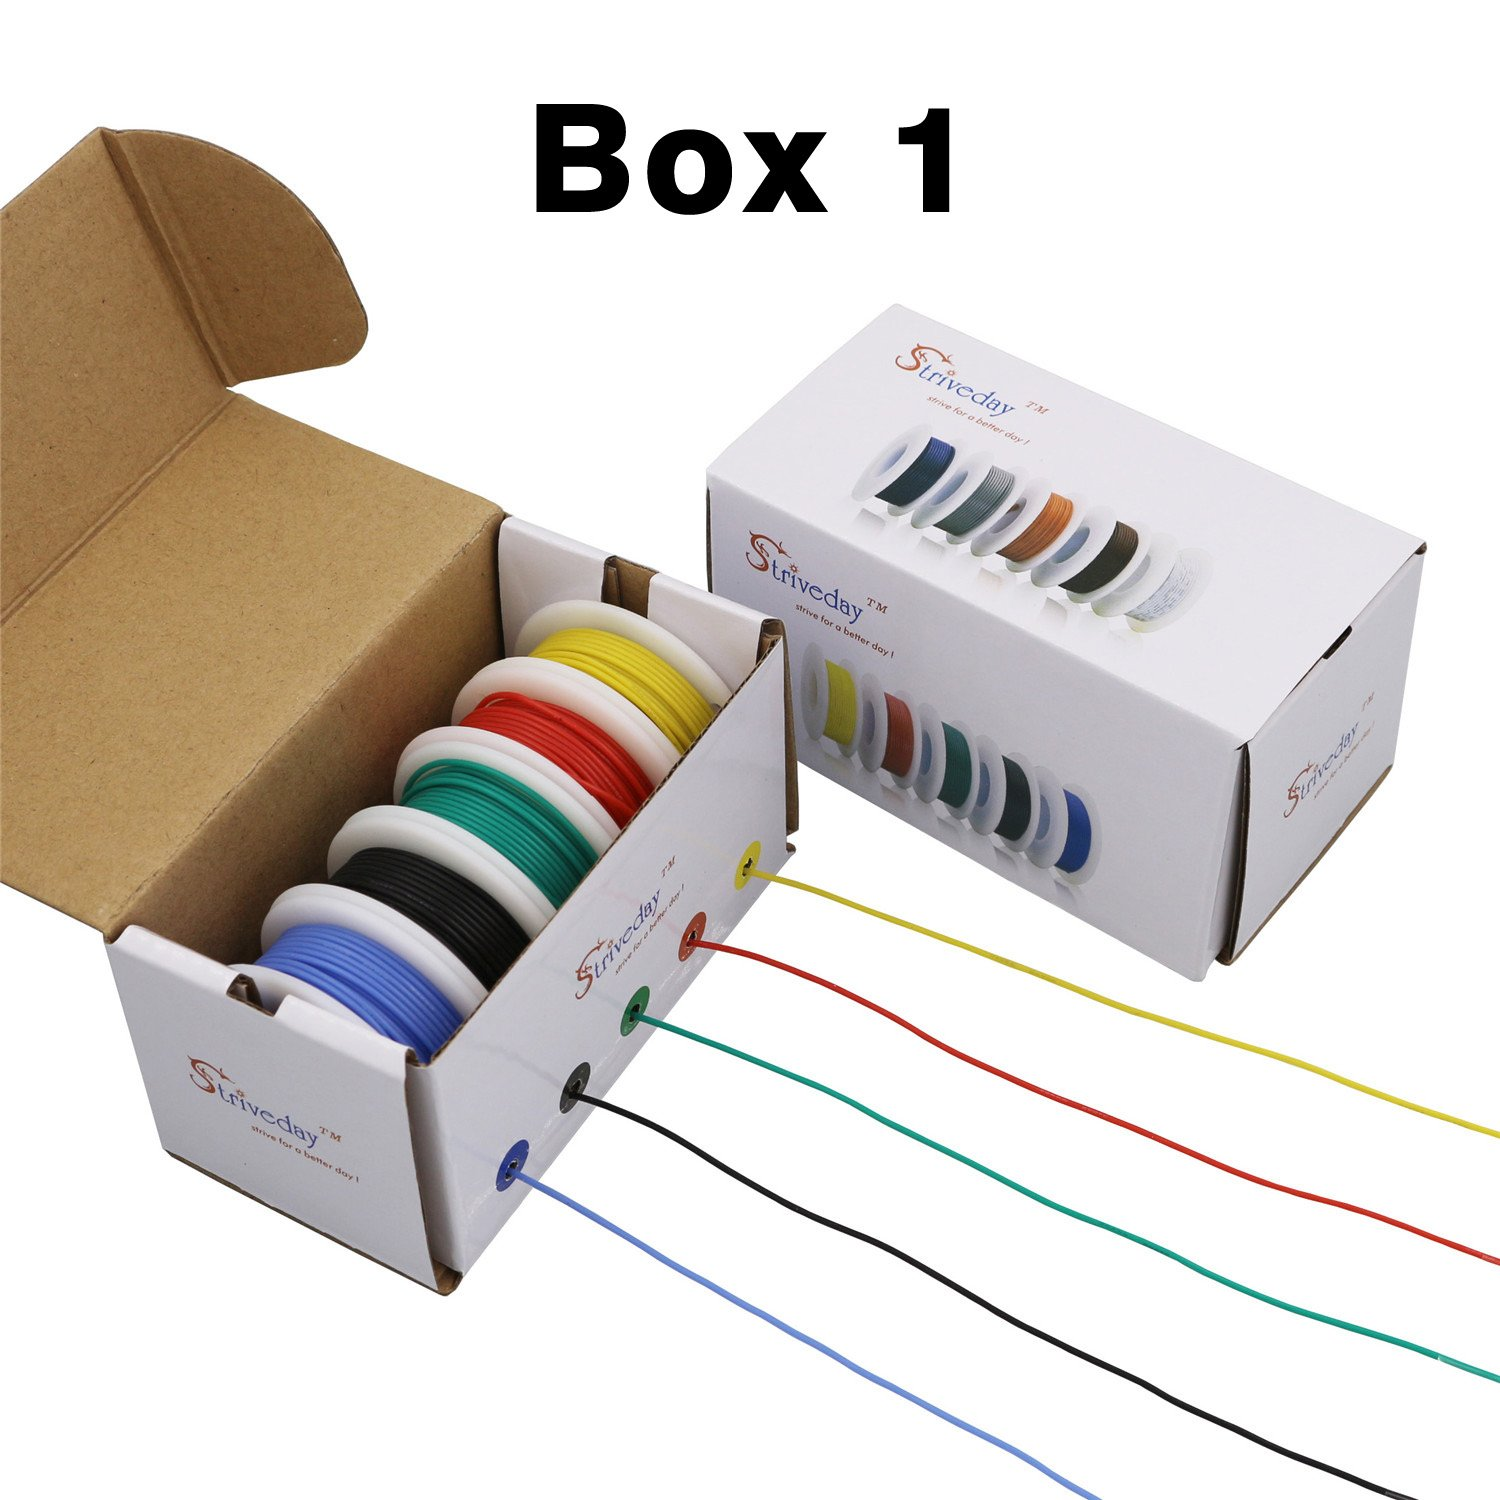 Strivedaytm 26 awg flexible silicone wire electric wire 26 gauge strivedaytm 26 awg flexible silicone wire electric wire 26 gauge coper hook up wire 300v cables electronic stranded wire cable electrics diy box 1 greentooth Choice Image